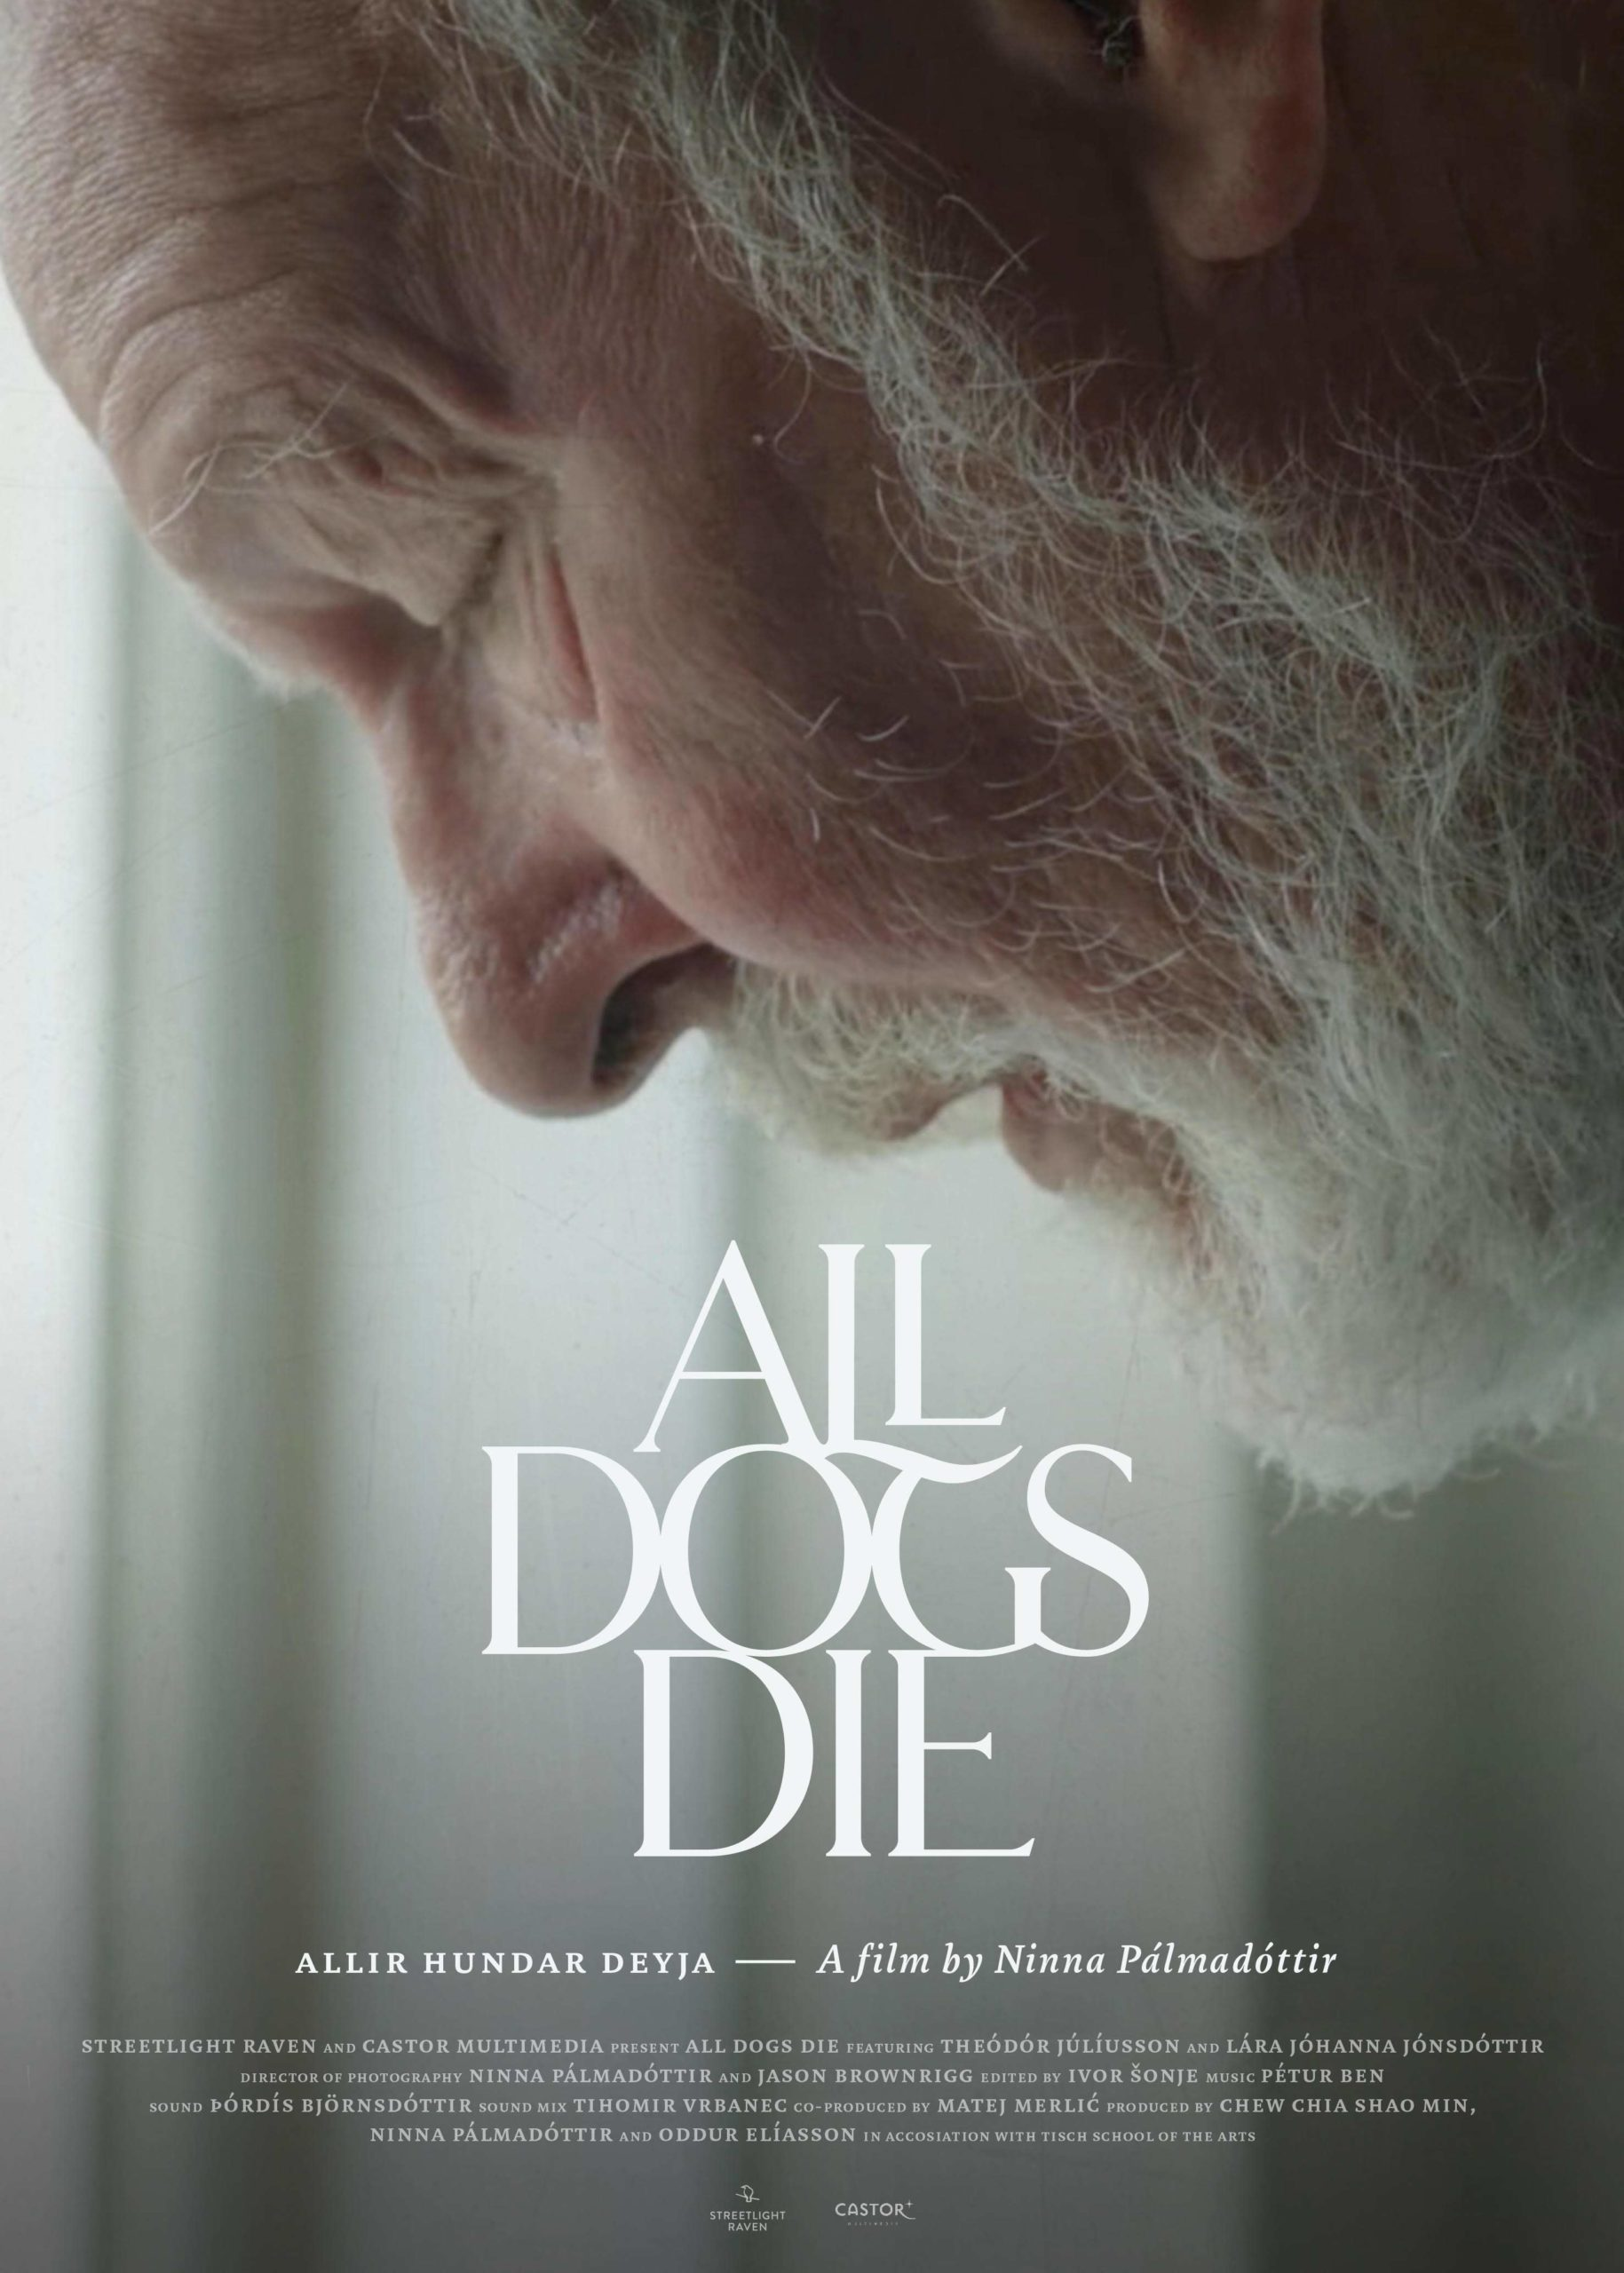 All Dogs Die